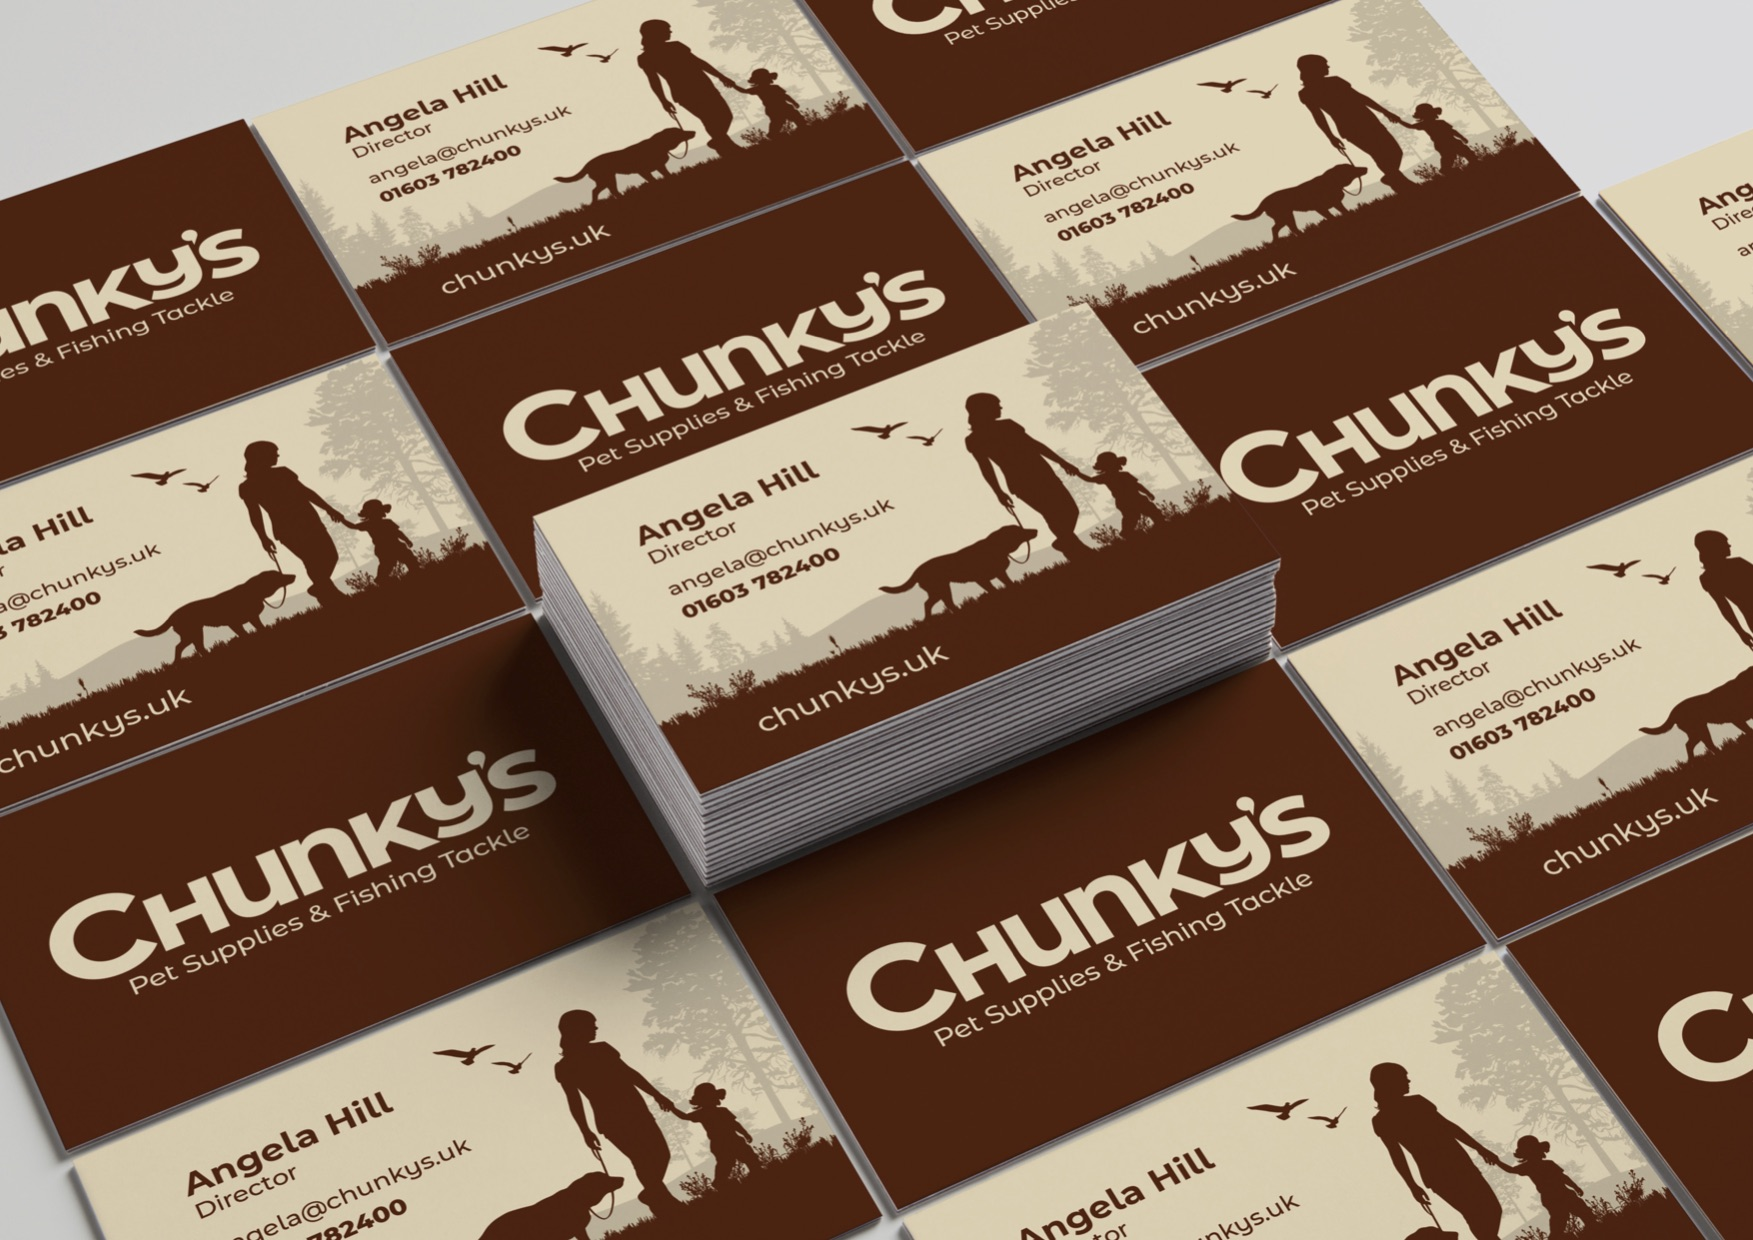 CHUNKY'S BUSINESS CARDS